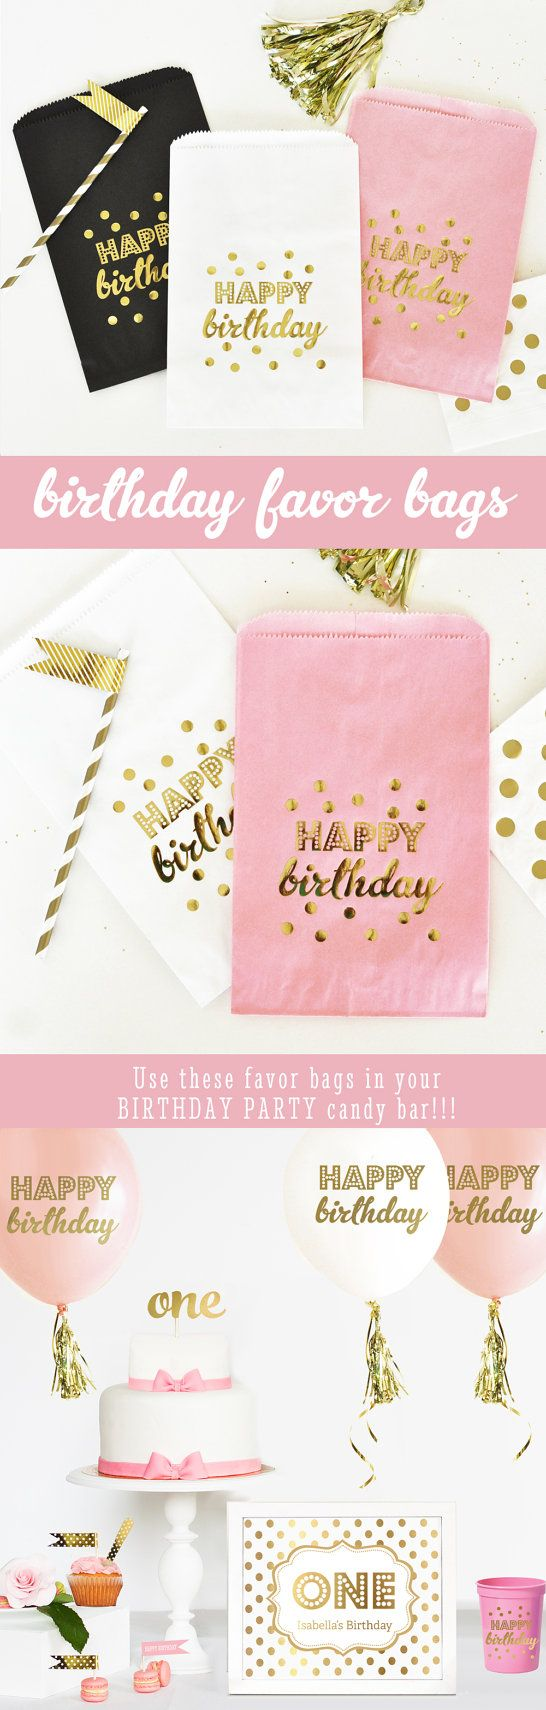 Birthday Party Bags printed with Happy Birthday Confetti in Metallic Gold are perfect for a pink and gold birthday party candy buffet. Available in pink